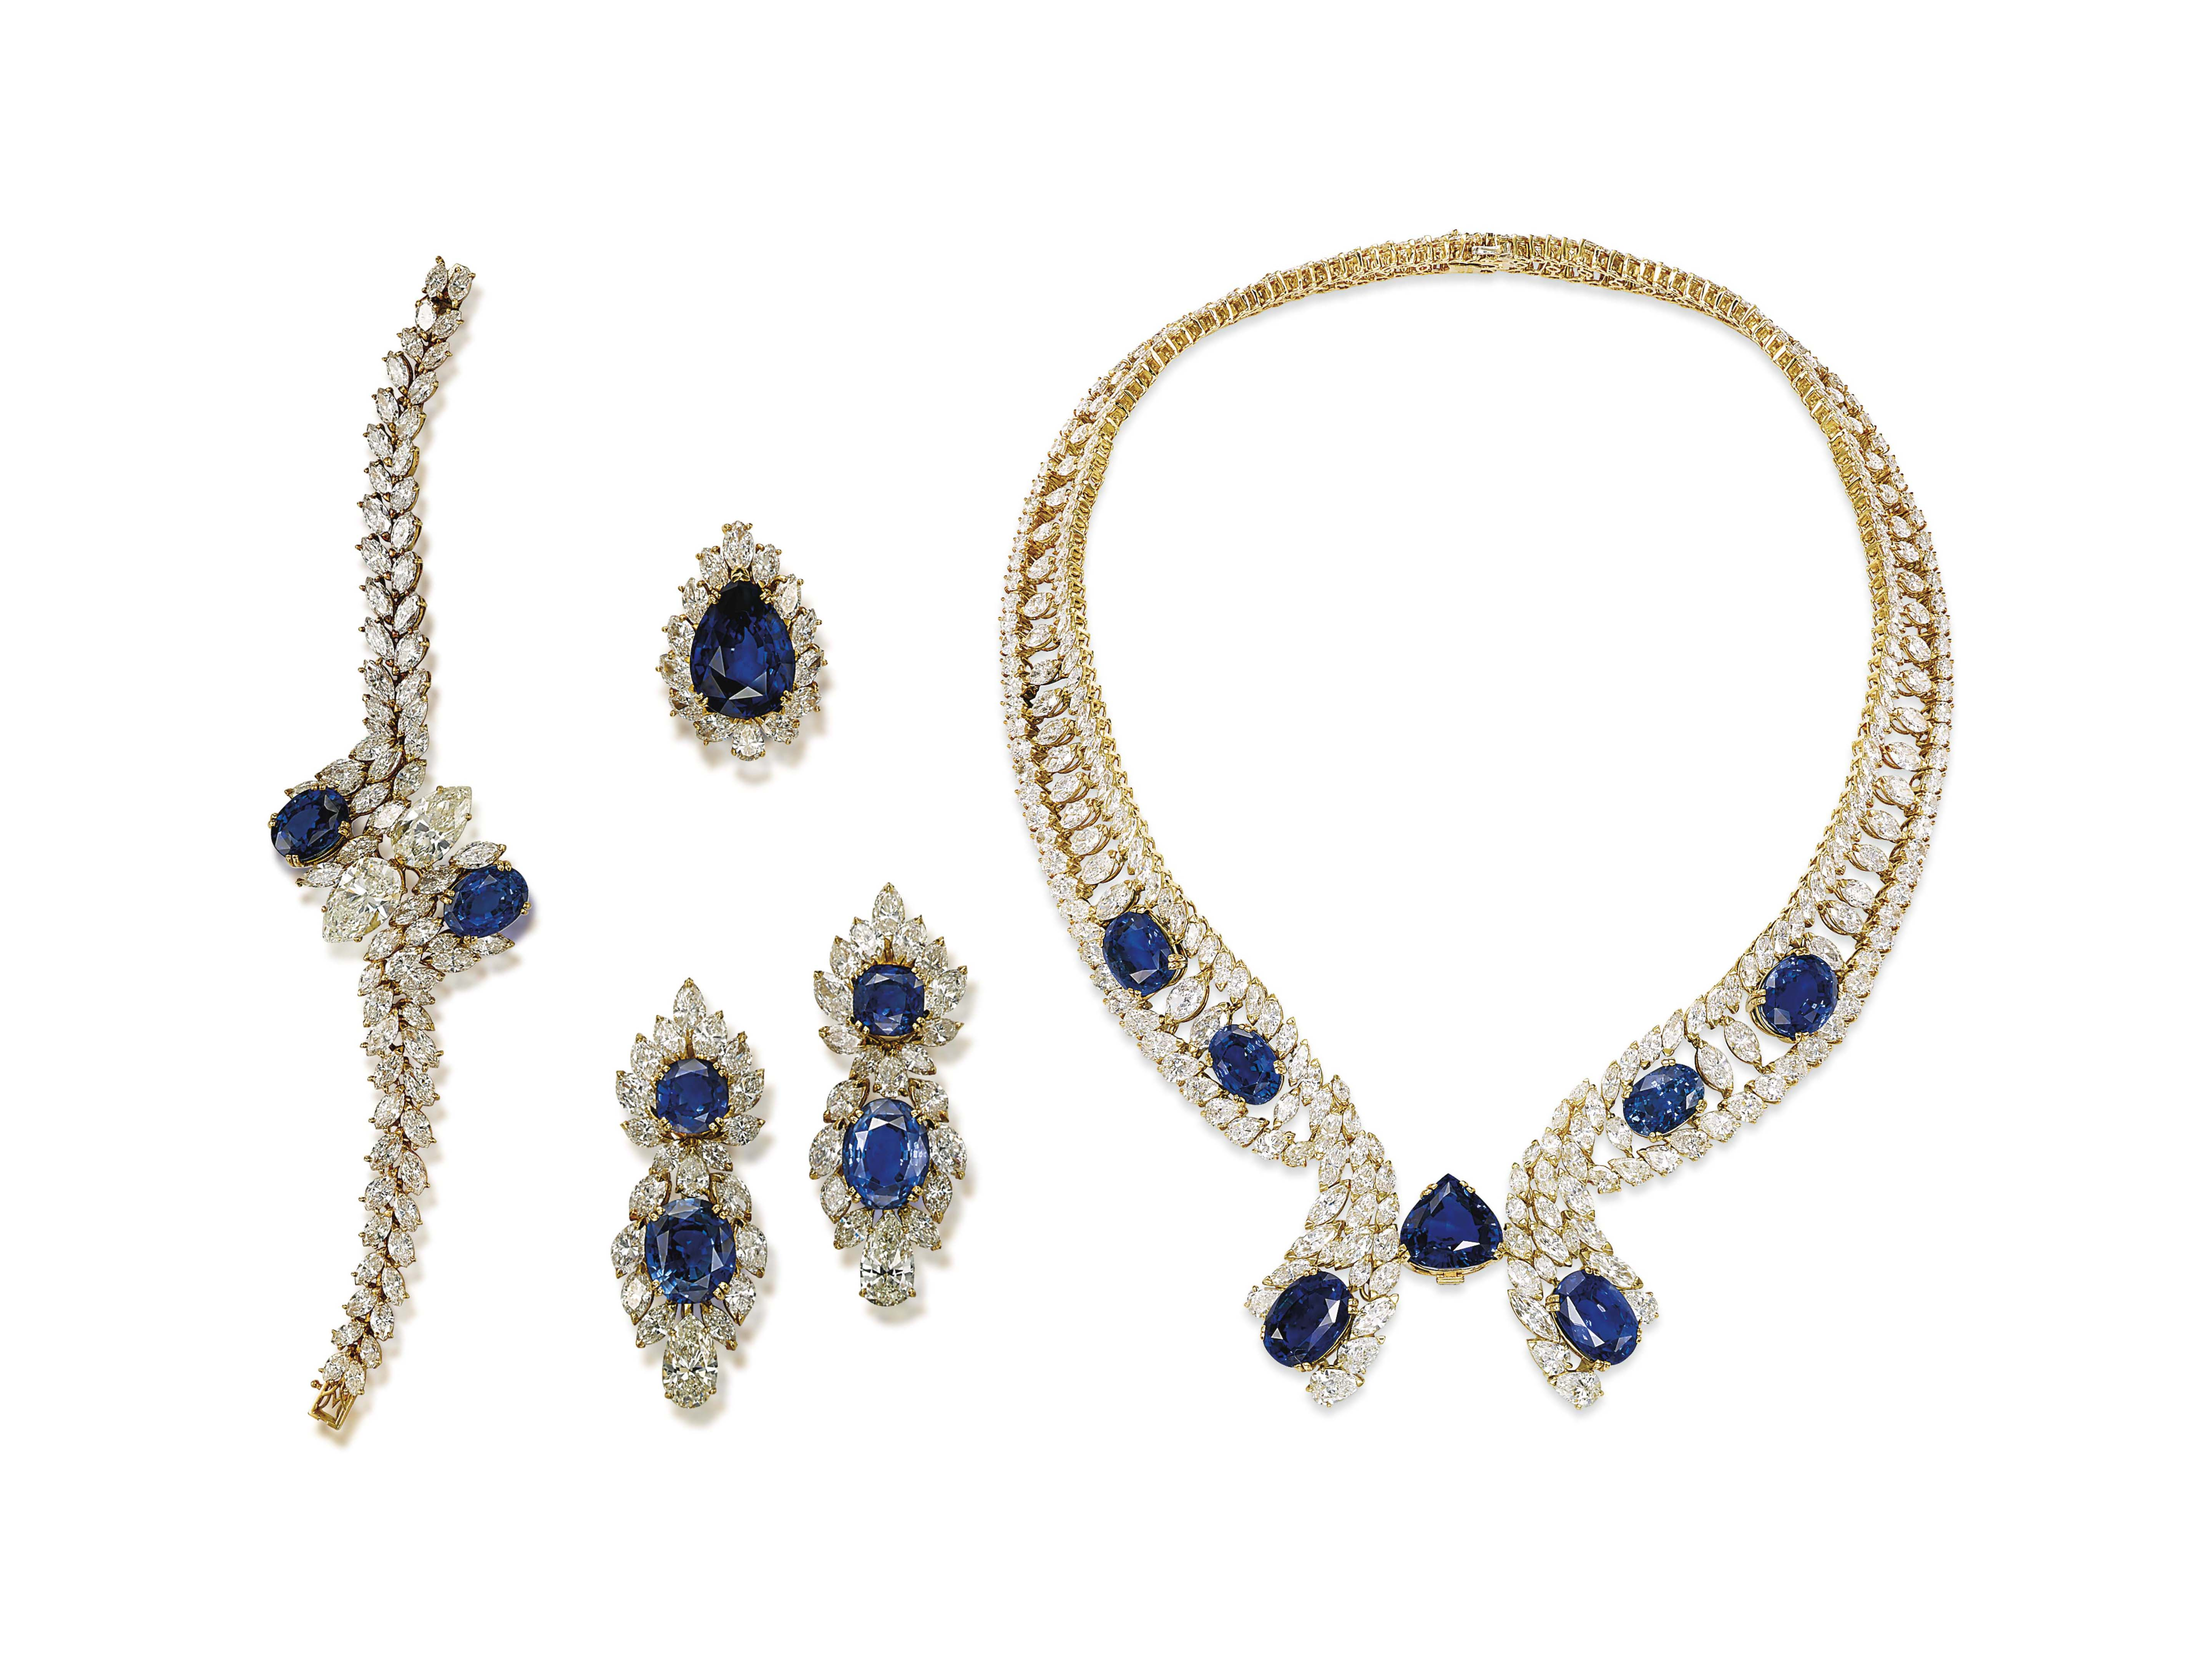 A SUITE OF SAPPHIRE AND DIAMOND JEWELLERY, BY MOUAWAD